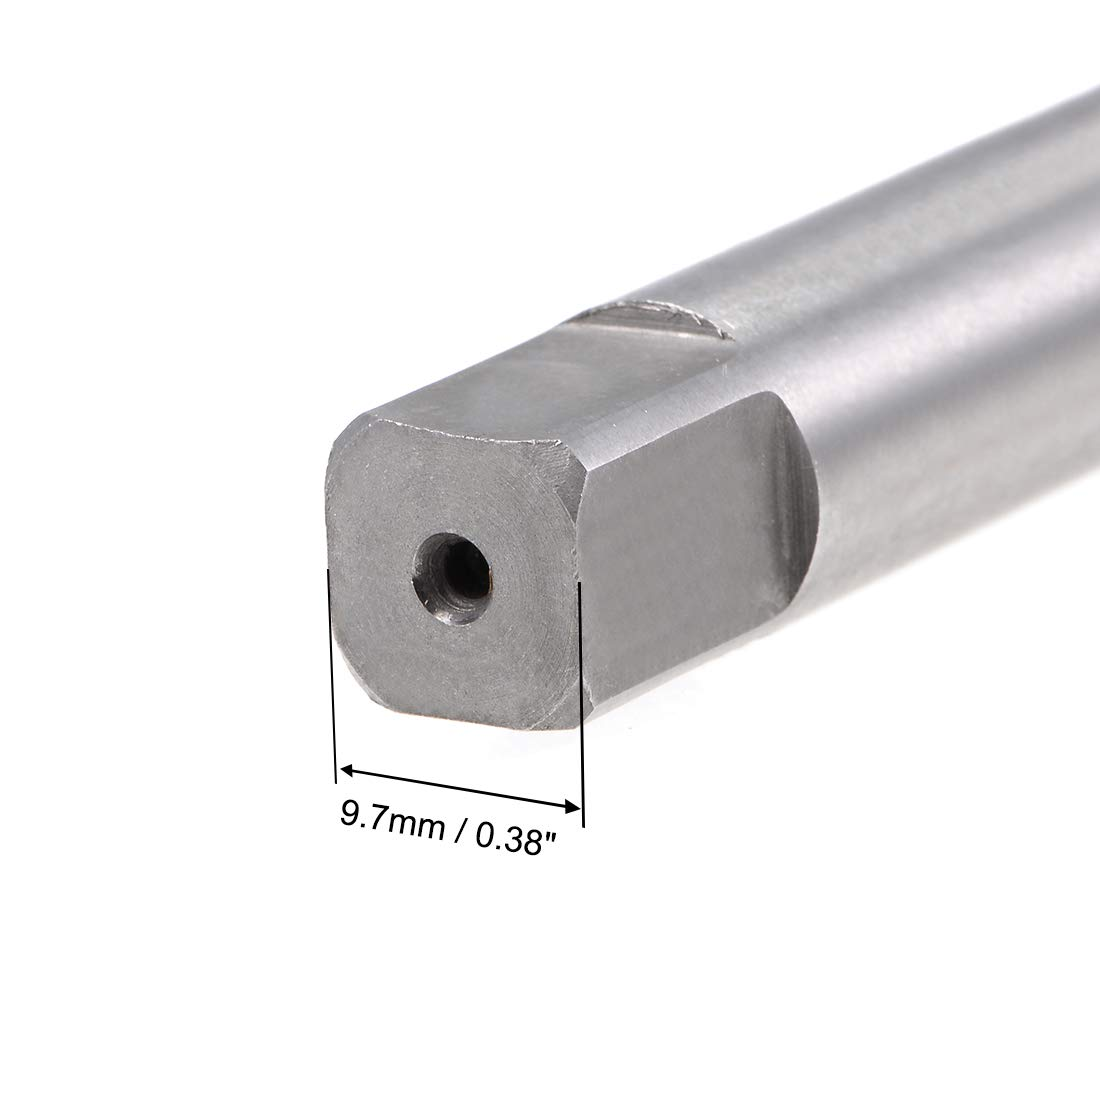 uxcell Metric Machine Tap Left M12 Thread 1.5 Pitch H2 4 Flutes High Speed Steel